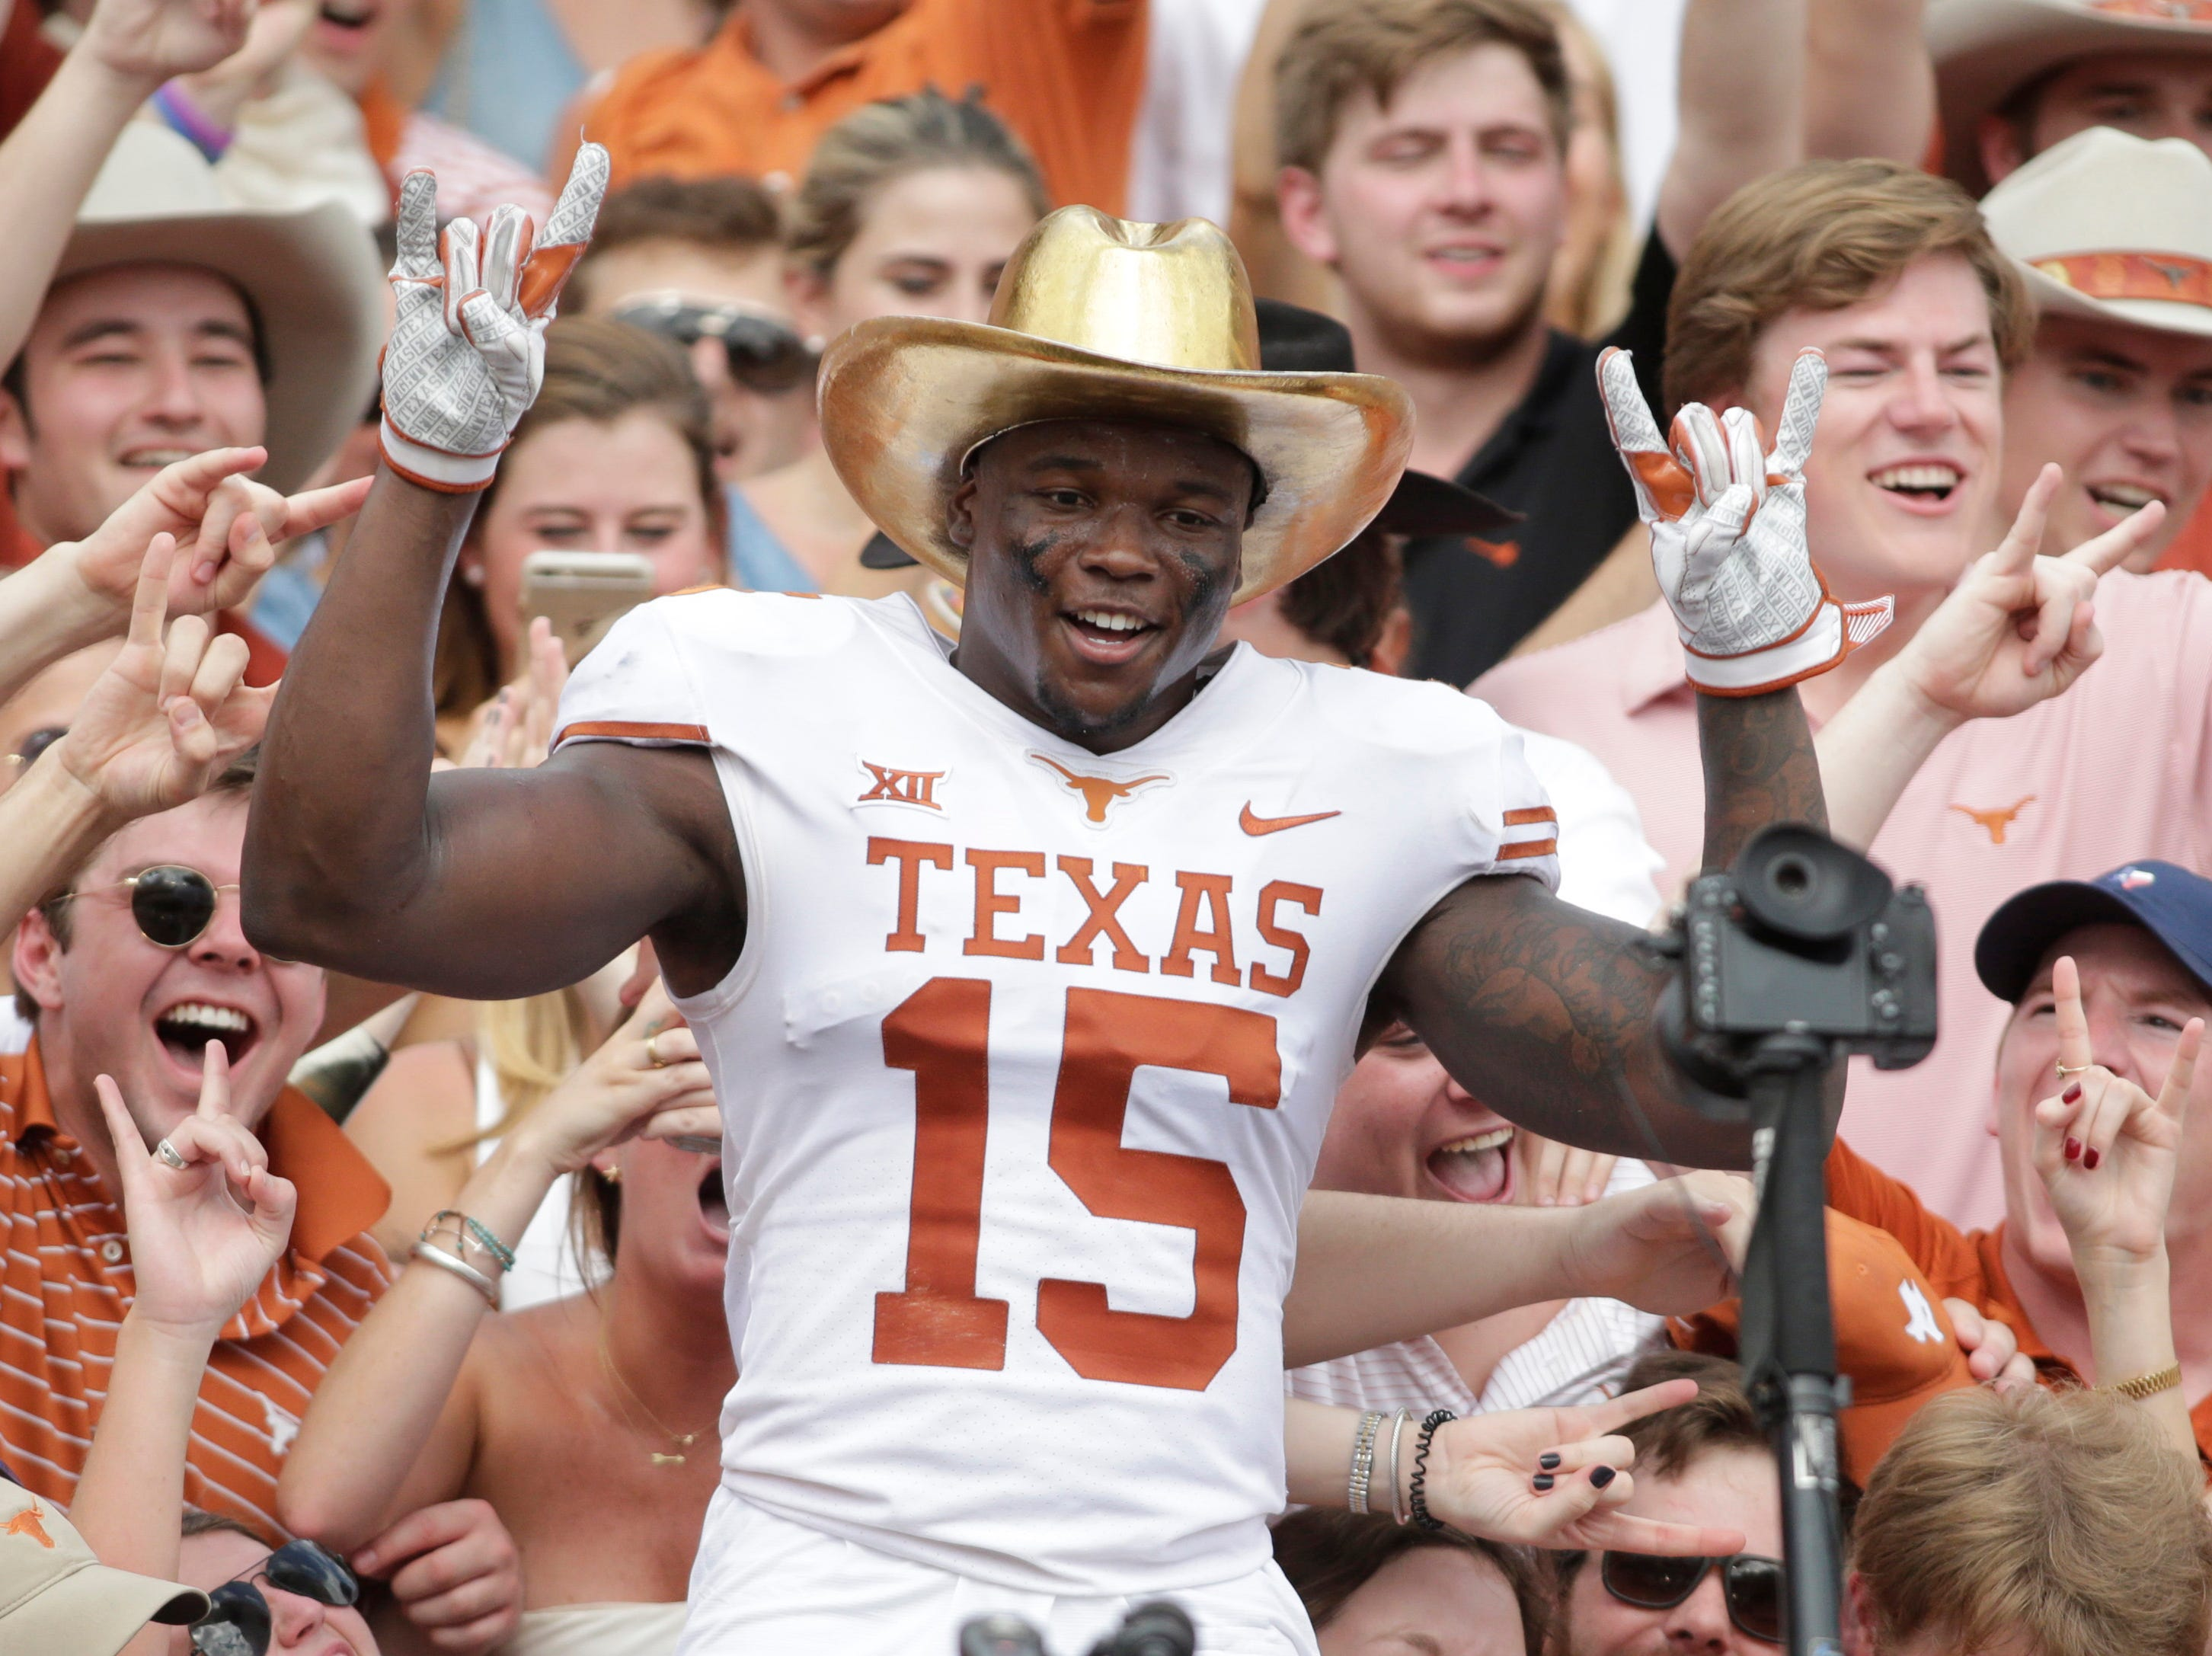 Oct. 6: Texas Longhorns defensive back Chris Brown celebrates in the crowd with the Golden Hat after beating the Oklahoma Sooners at the Cotton Bowl.